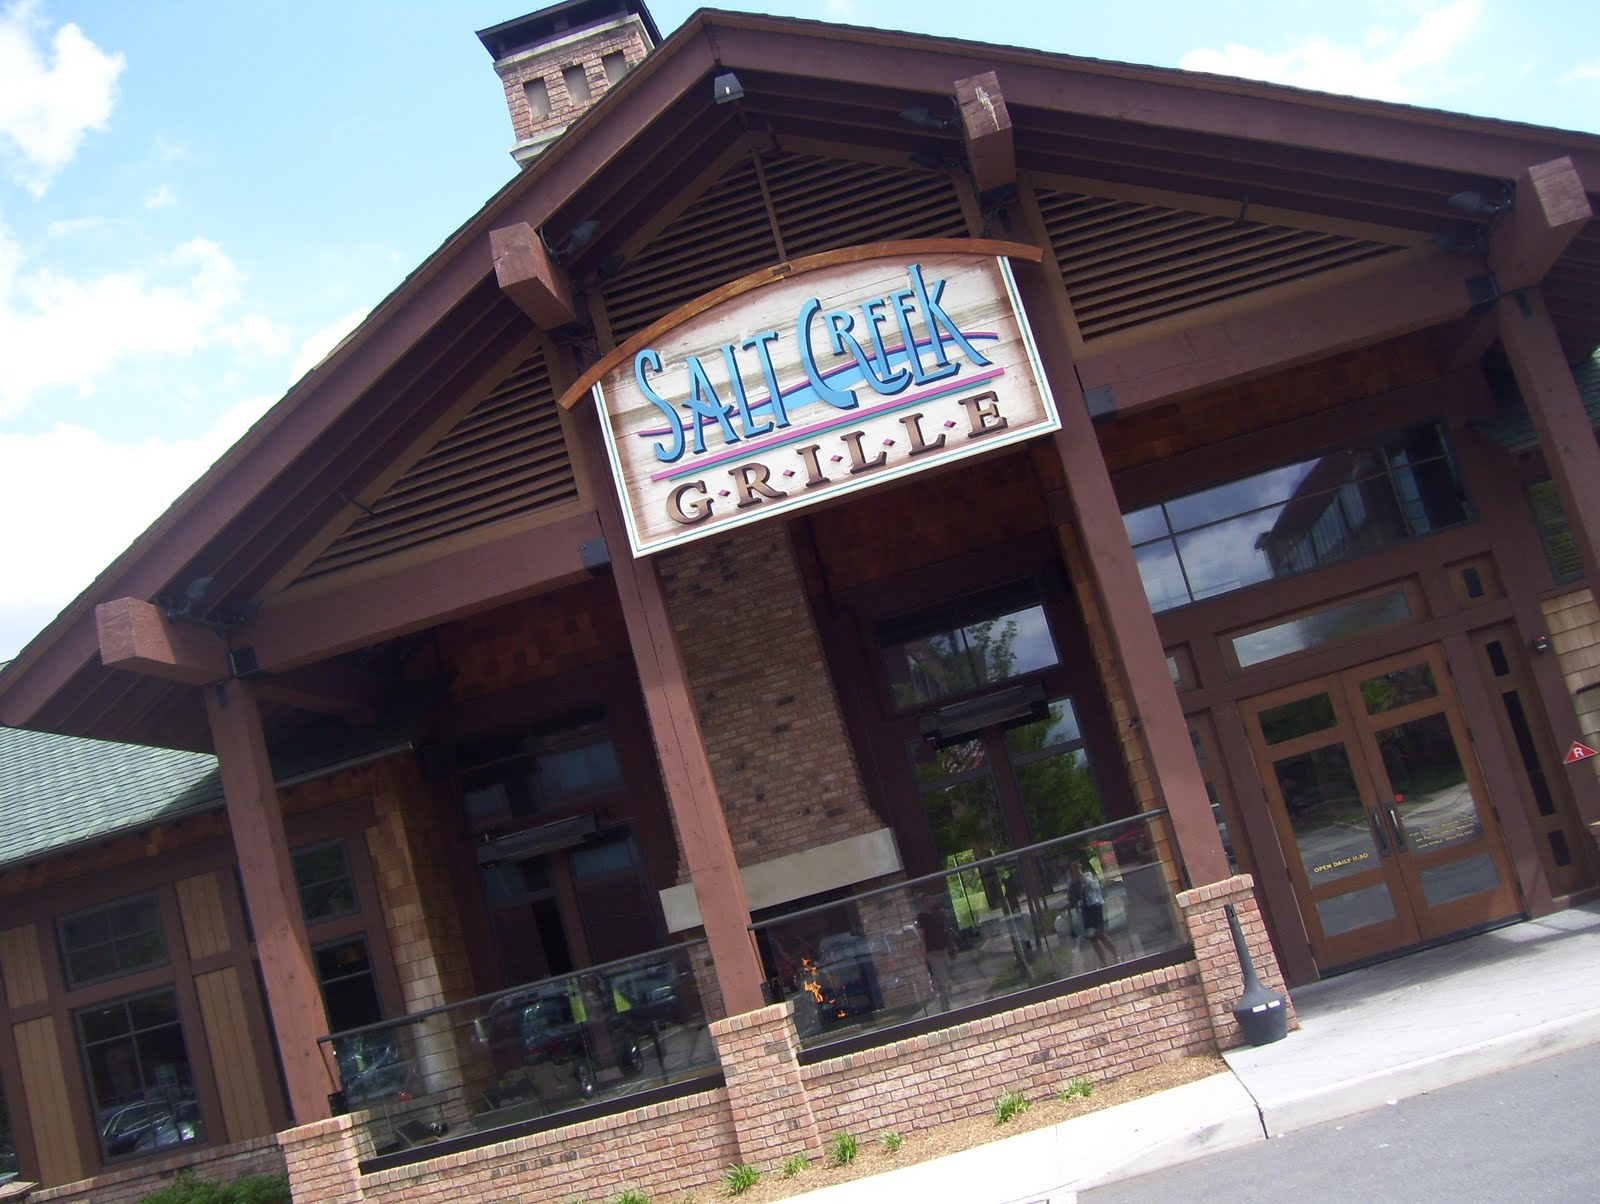 My Tasty Journey: Salt Creek Grille...